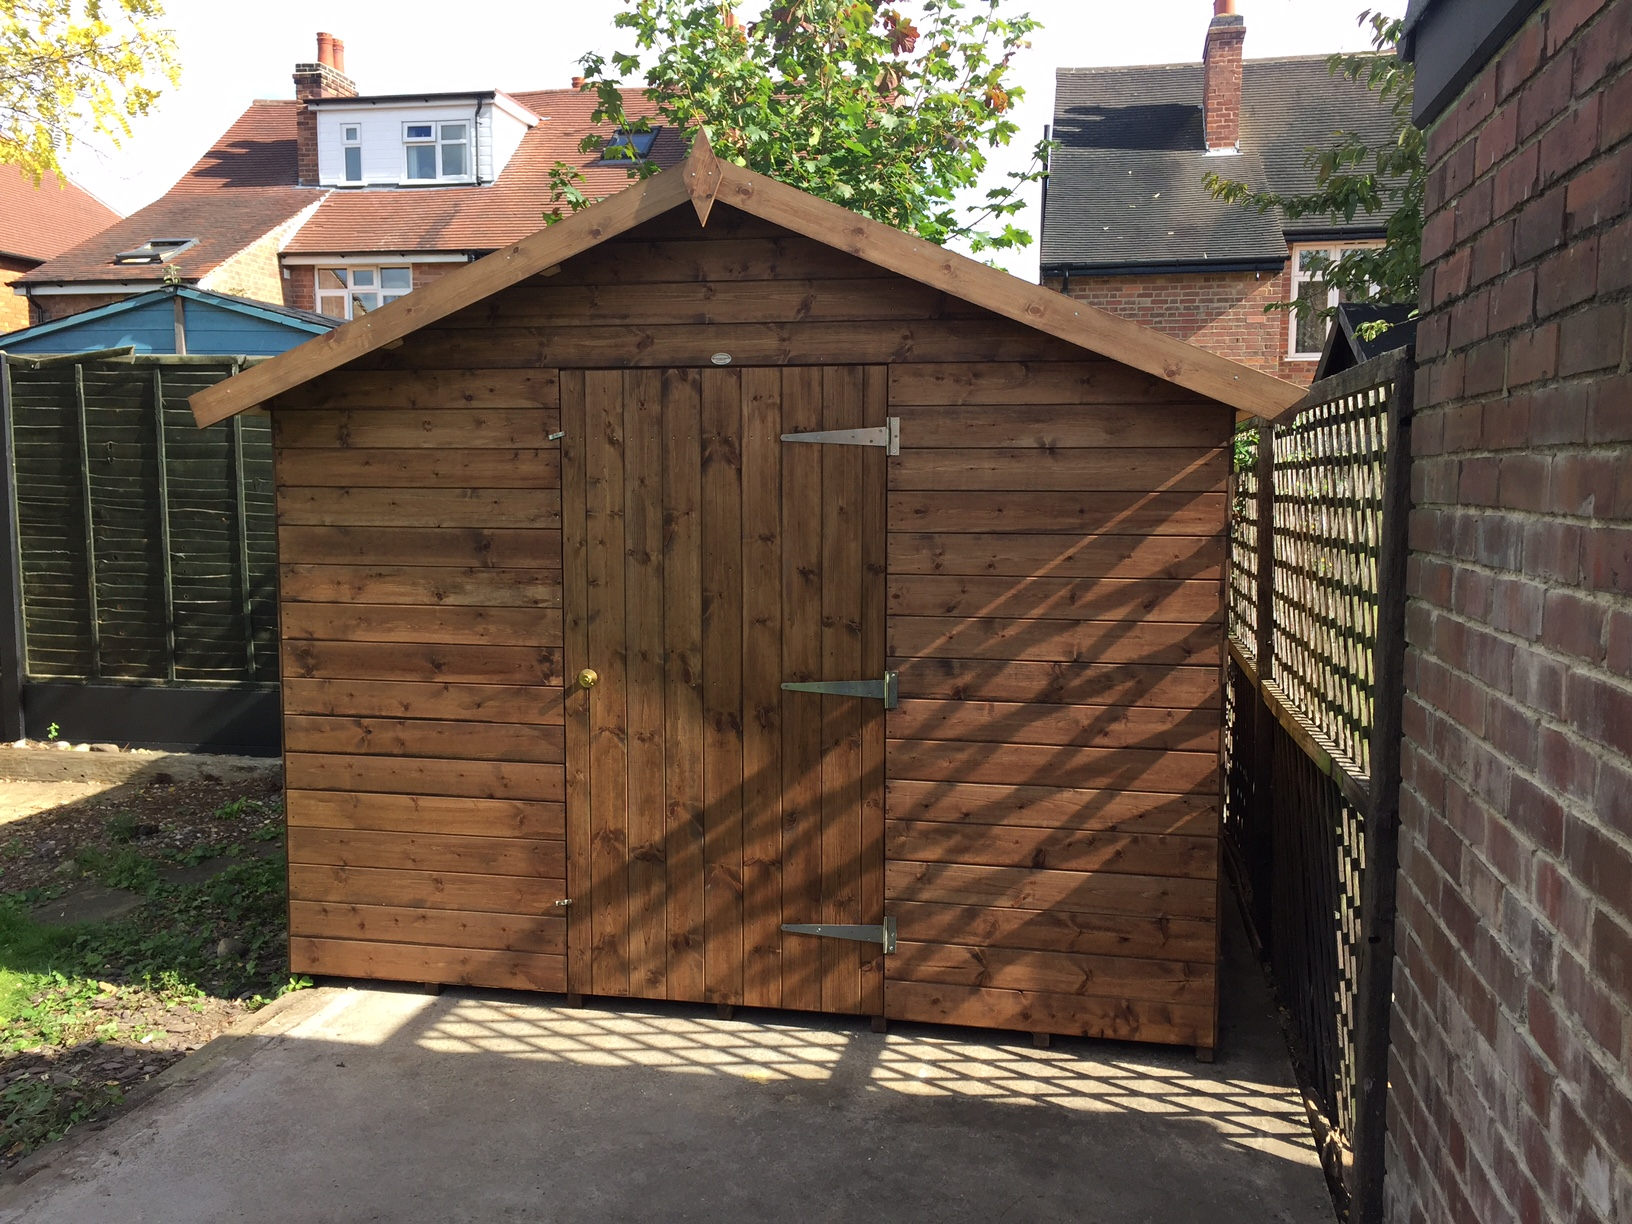 driveway dublin locks lockss lock shed of touch for garden u garage mm side rim how s size do door gate different full work sheds